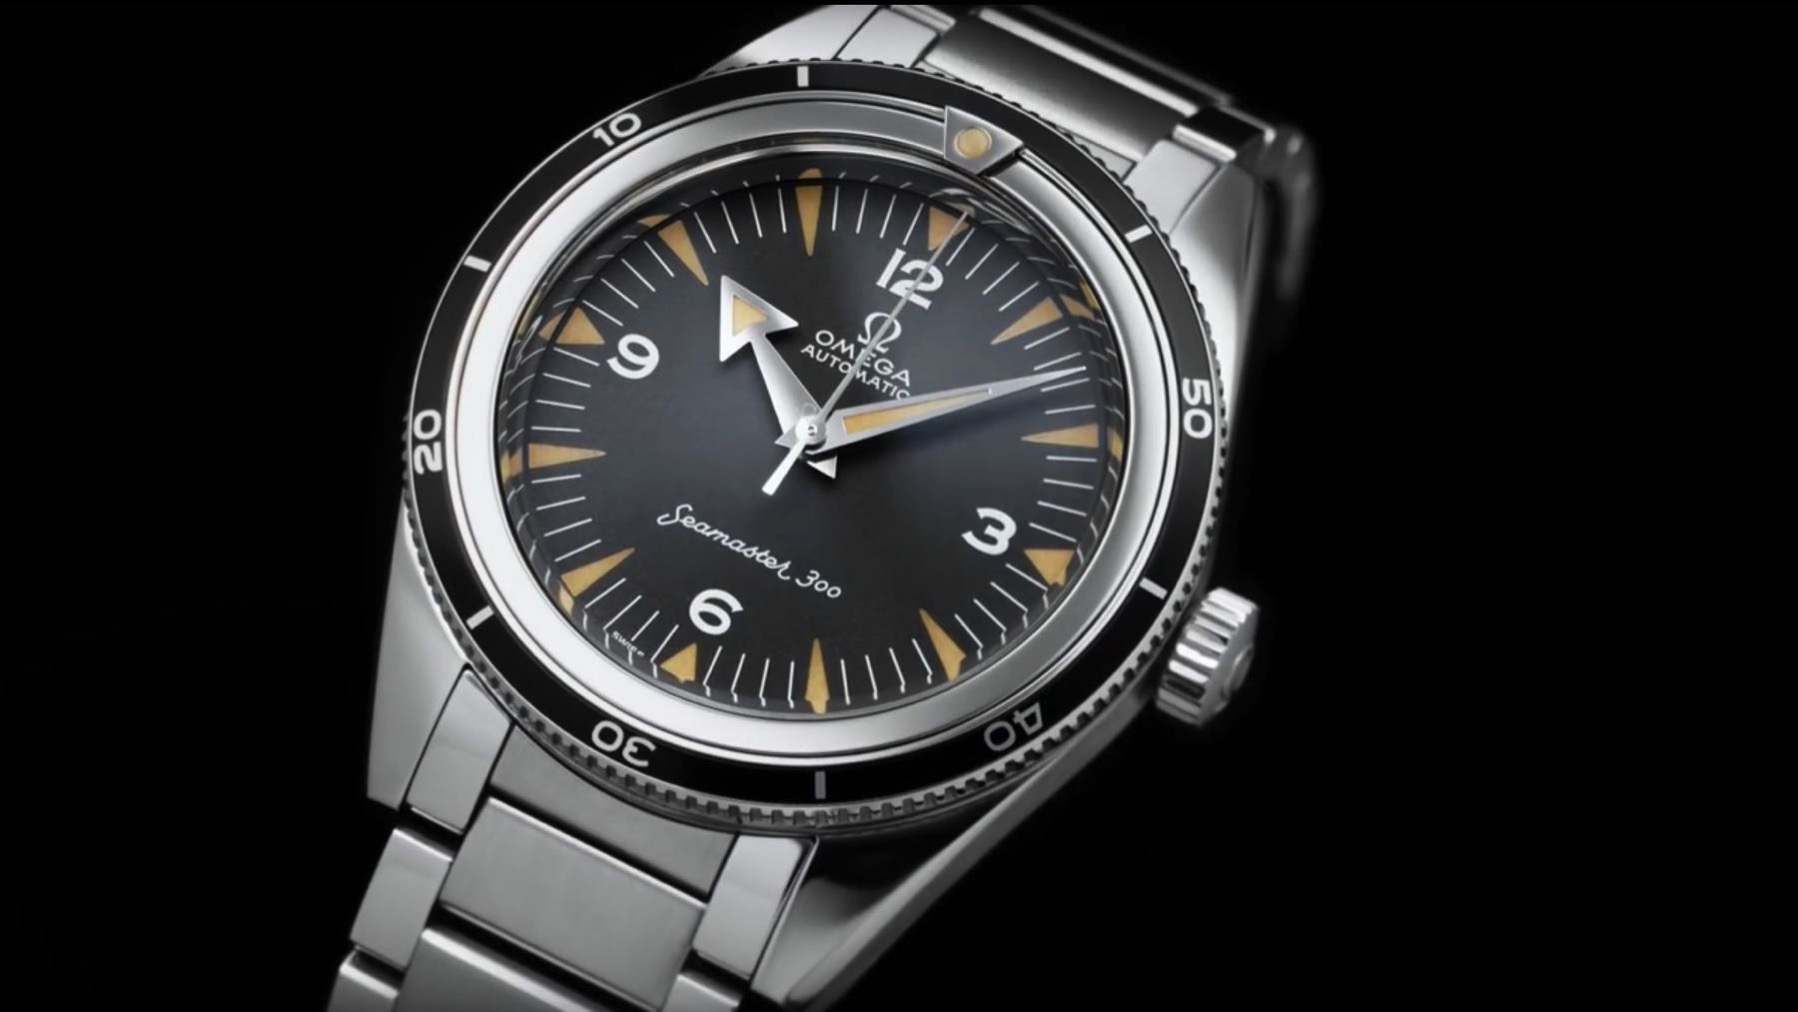 02 OMEGA 1957 Trilogy Limit Edition Seamaster